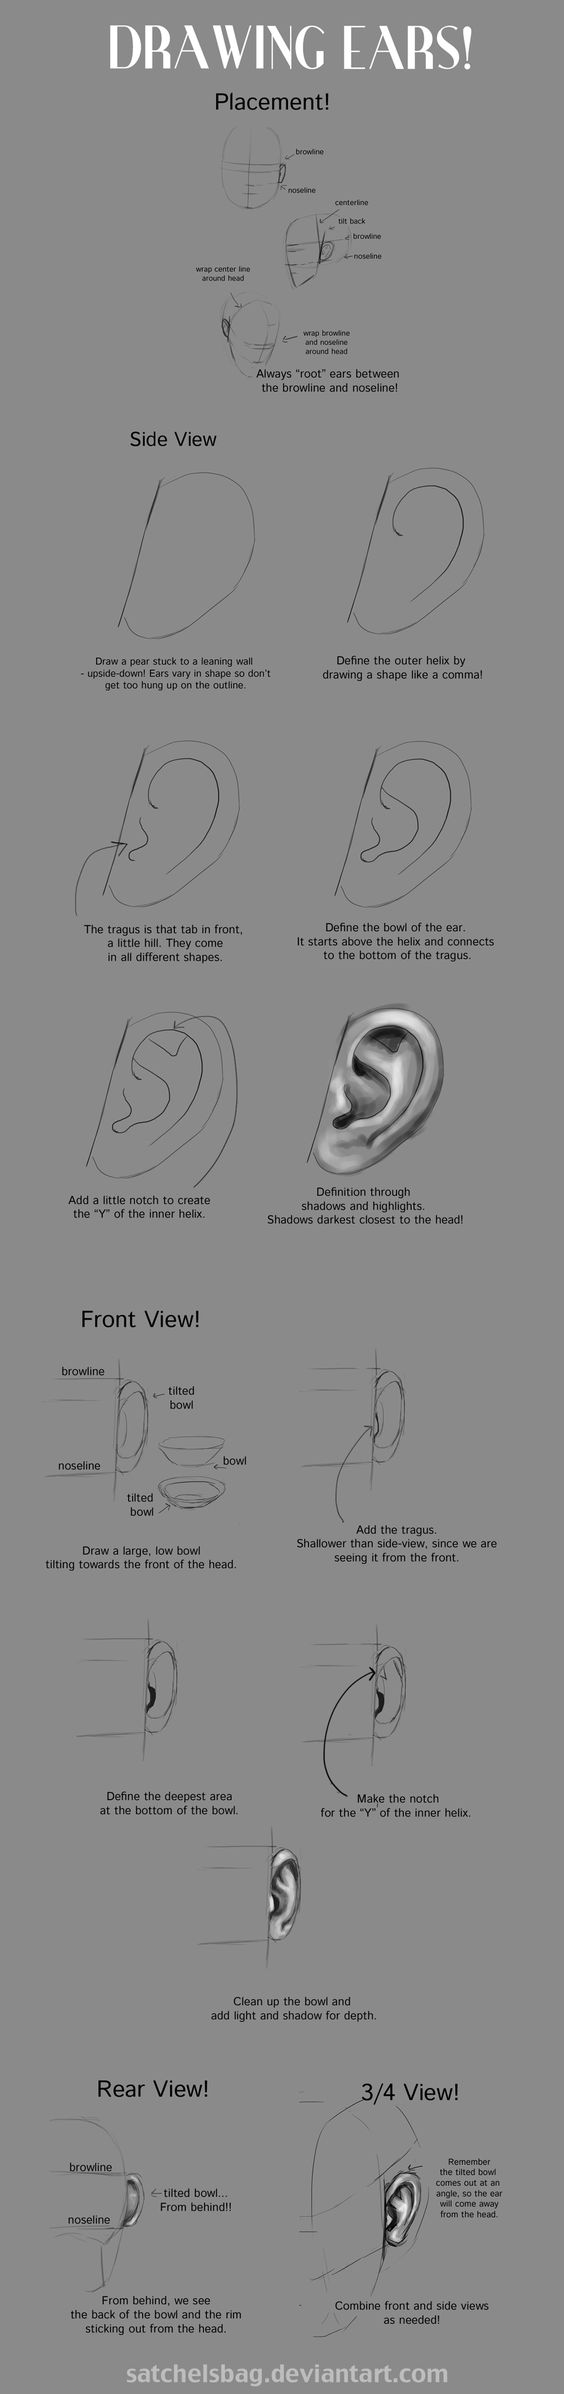 Drawing Ears Tutorial by DianetheKraus.deviantart.com on @deviantART